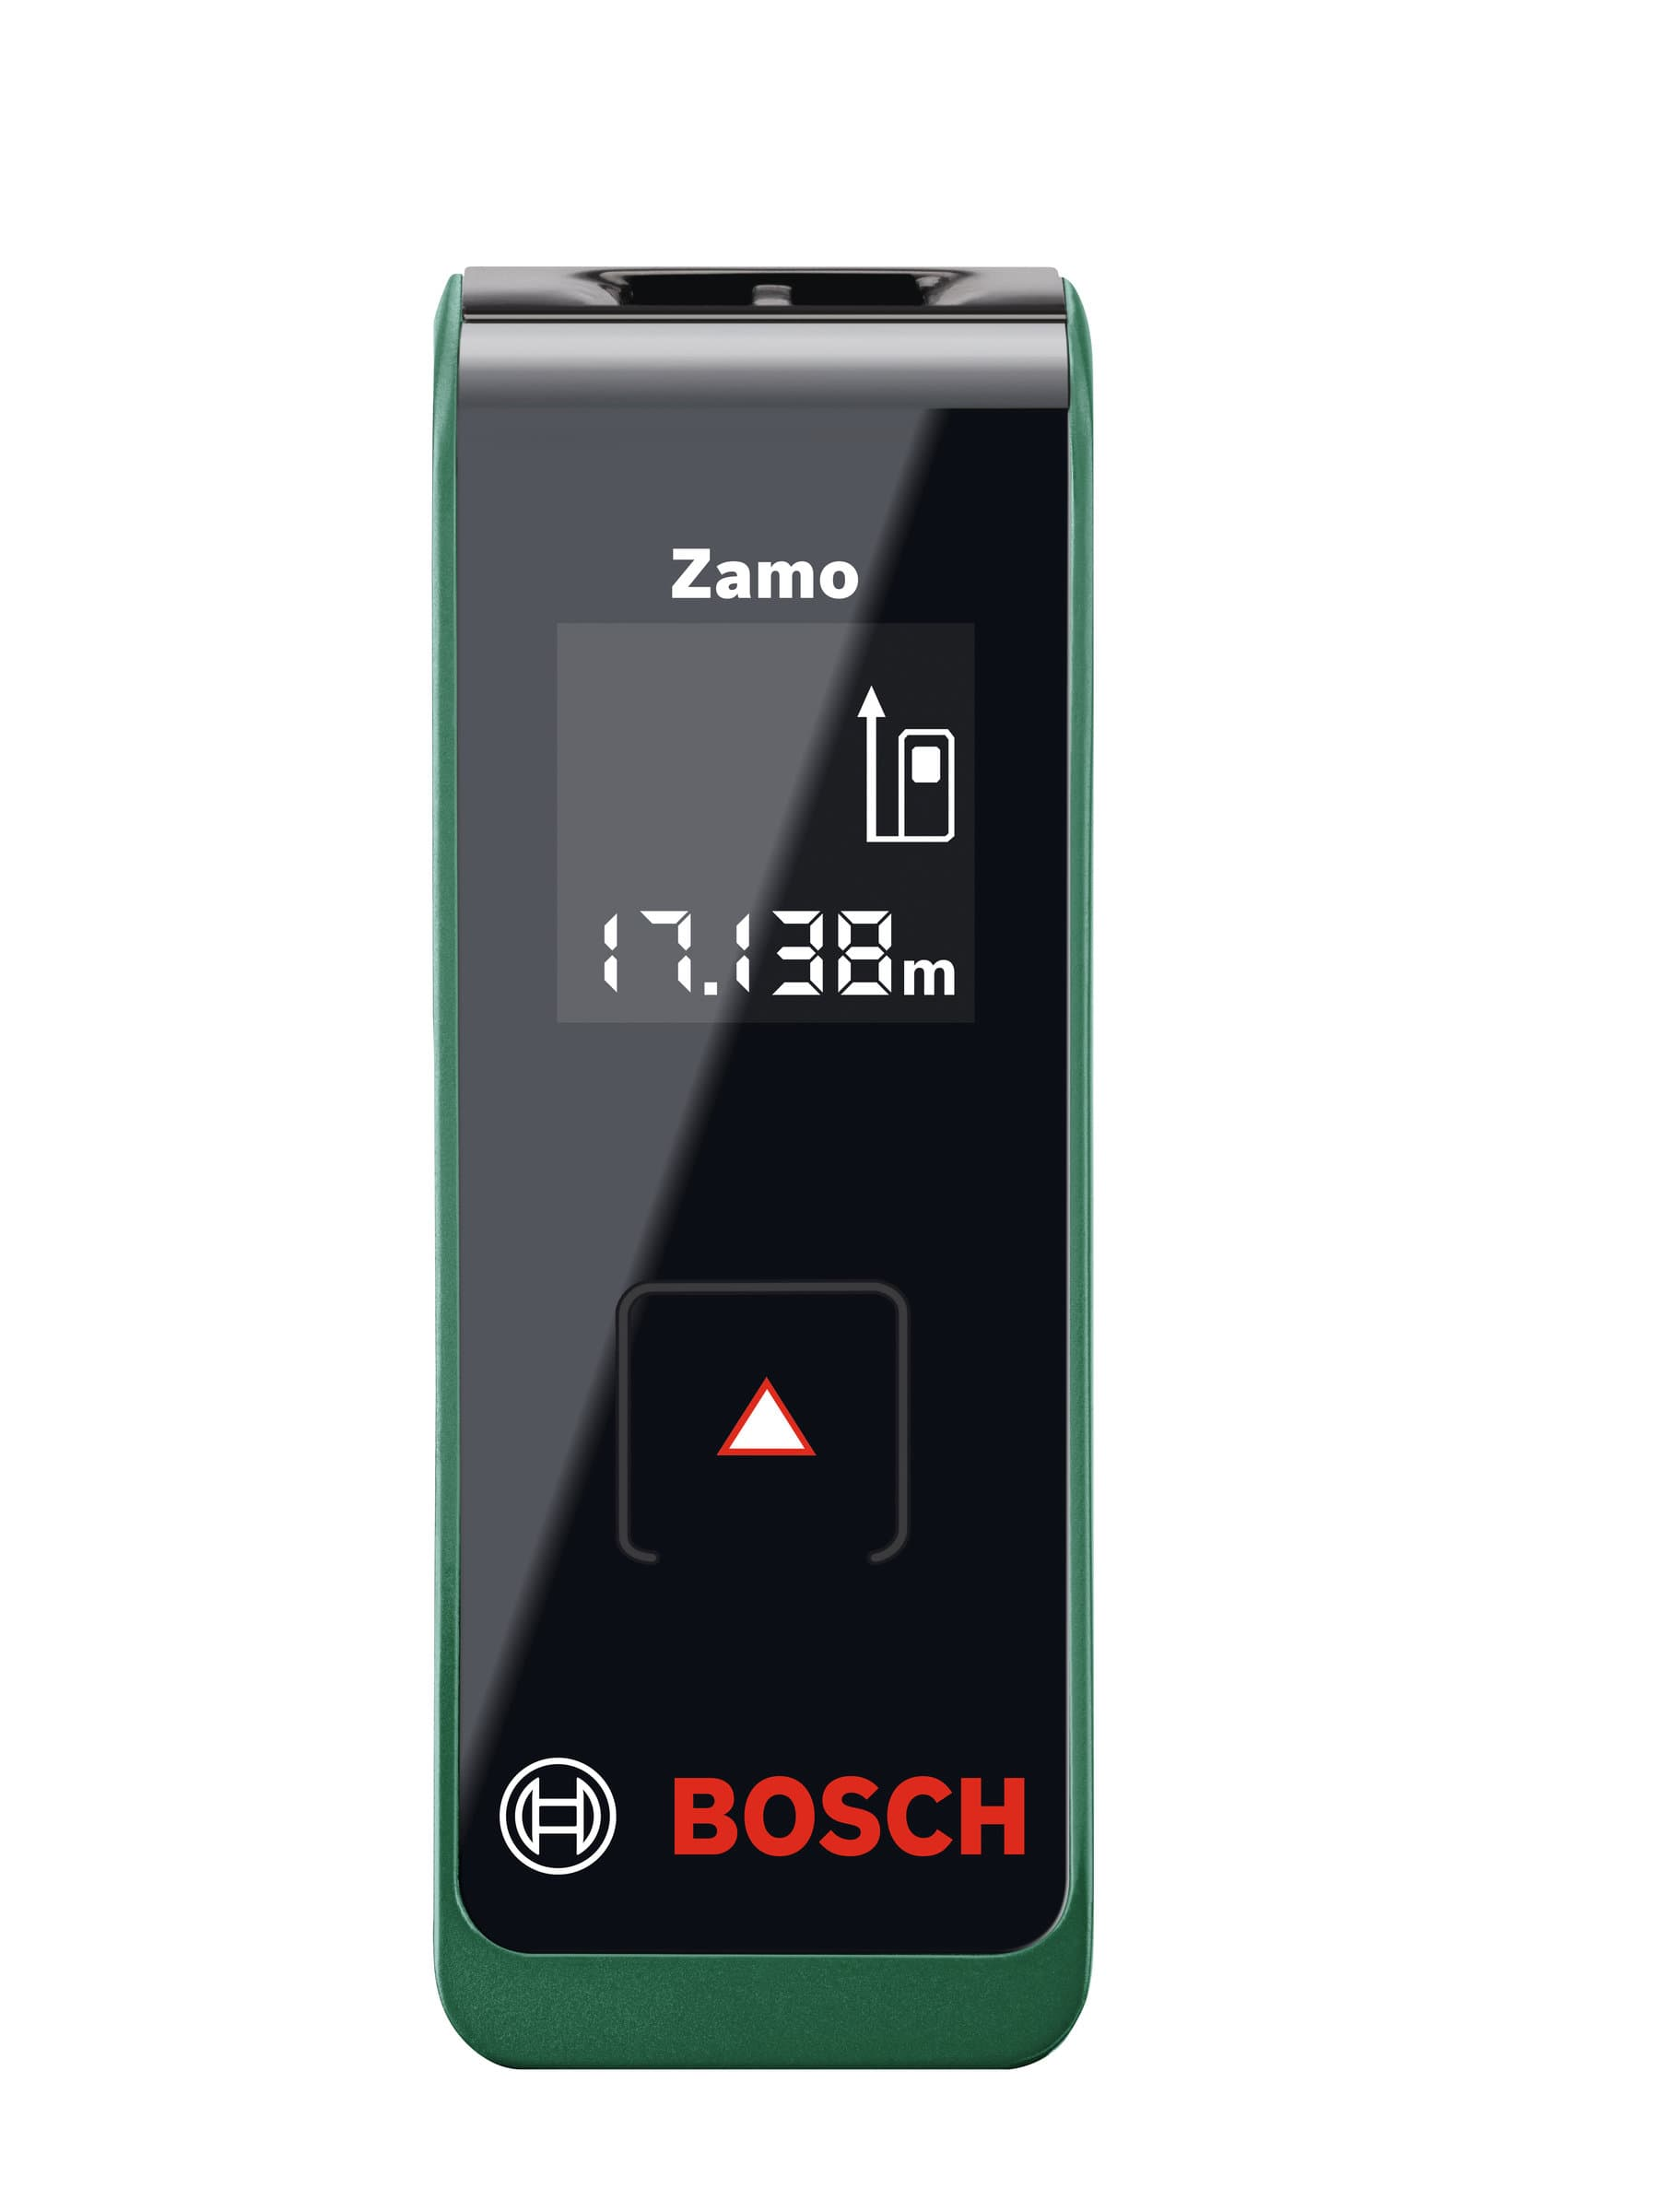 bosch digitaler laser entfernungsmesser zamo ii migipedia. Black Bedroom Furniture Sets. Home Design Ideas